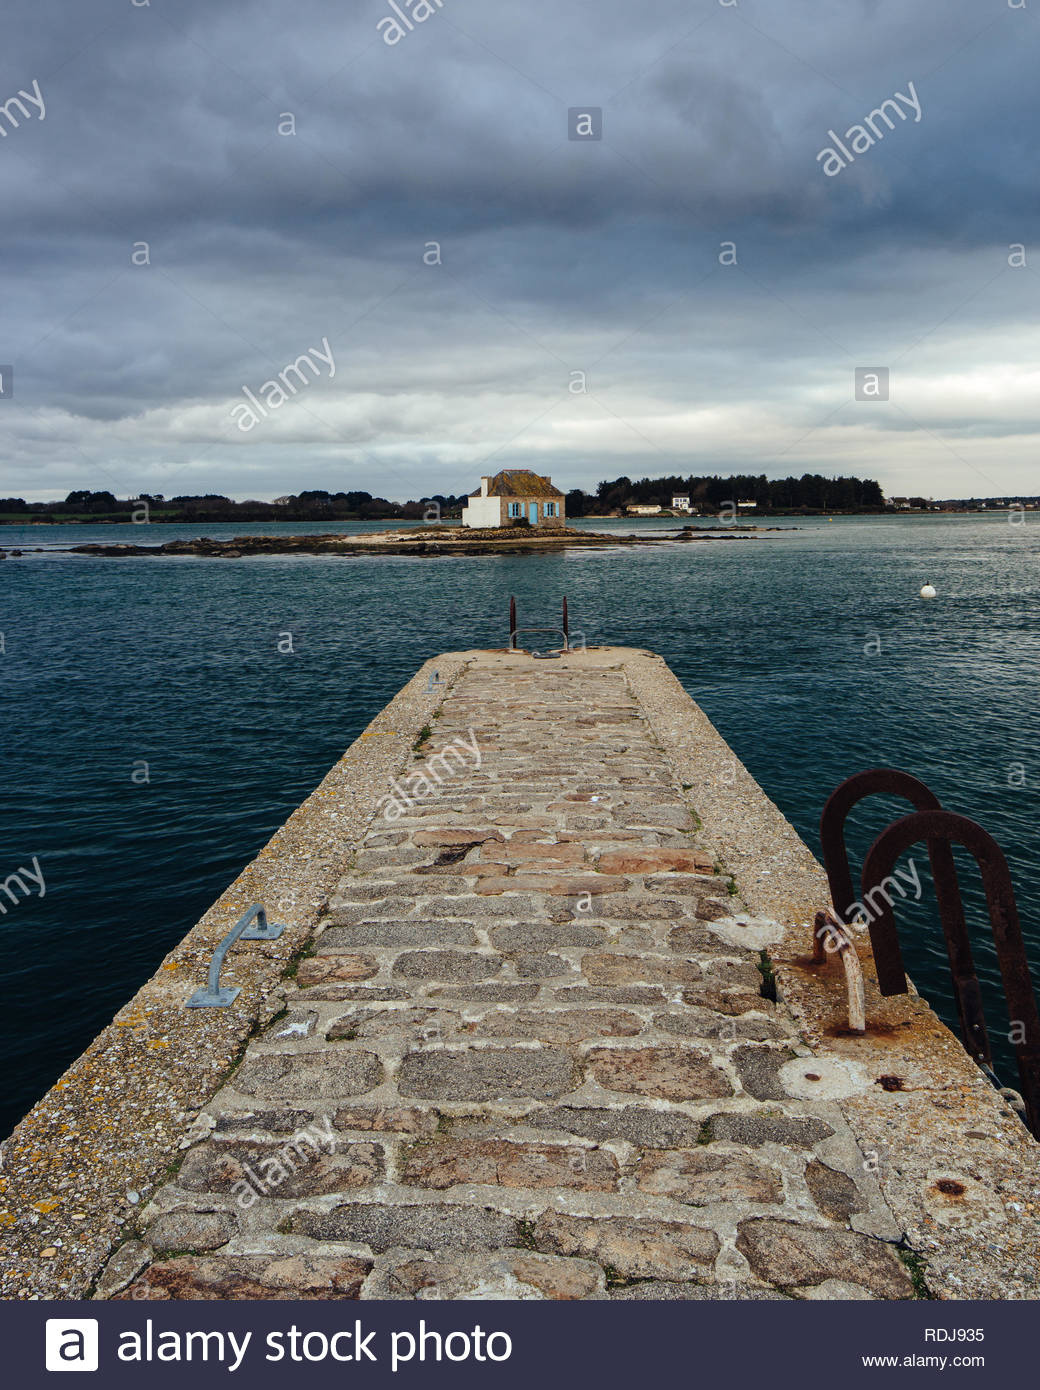 Little harbor of 'Saint-Cado' in Brittany, France. A place famous for the different houses surrounded by water. - Stock Image